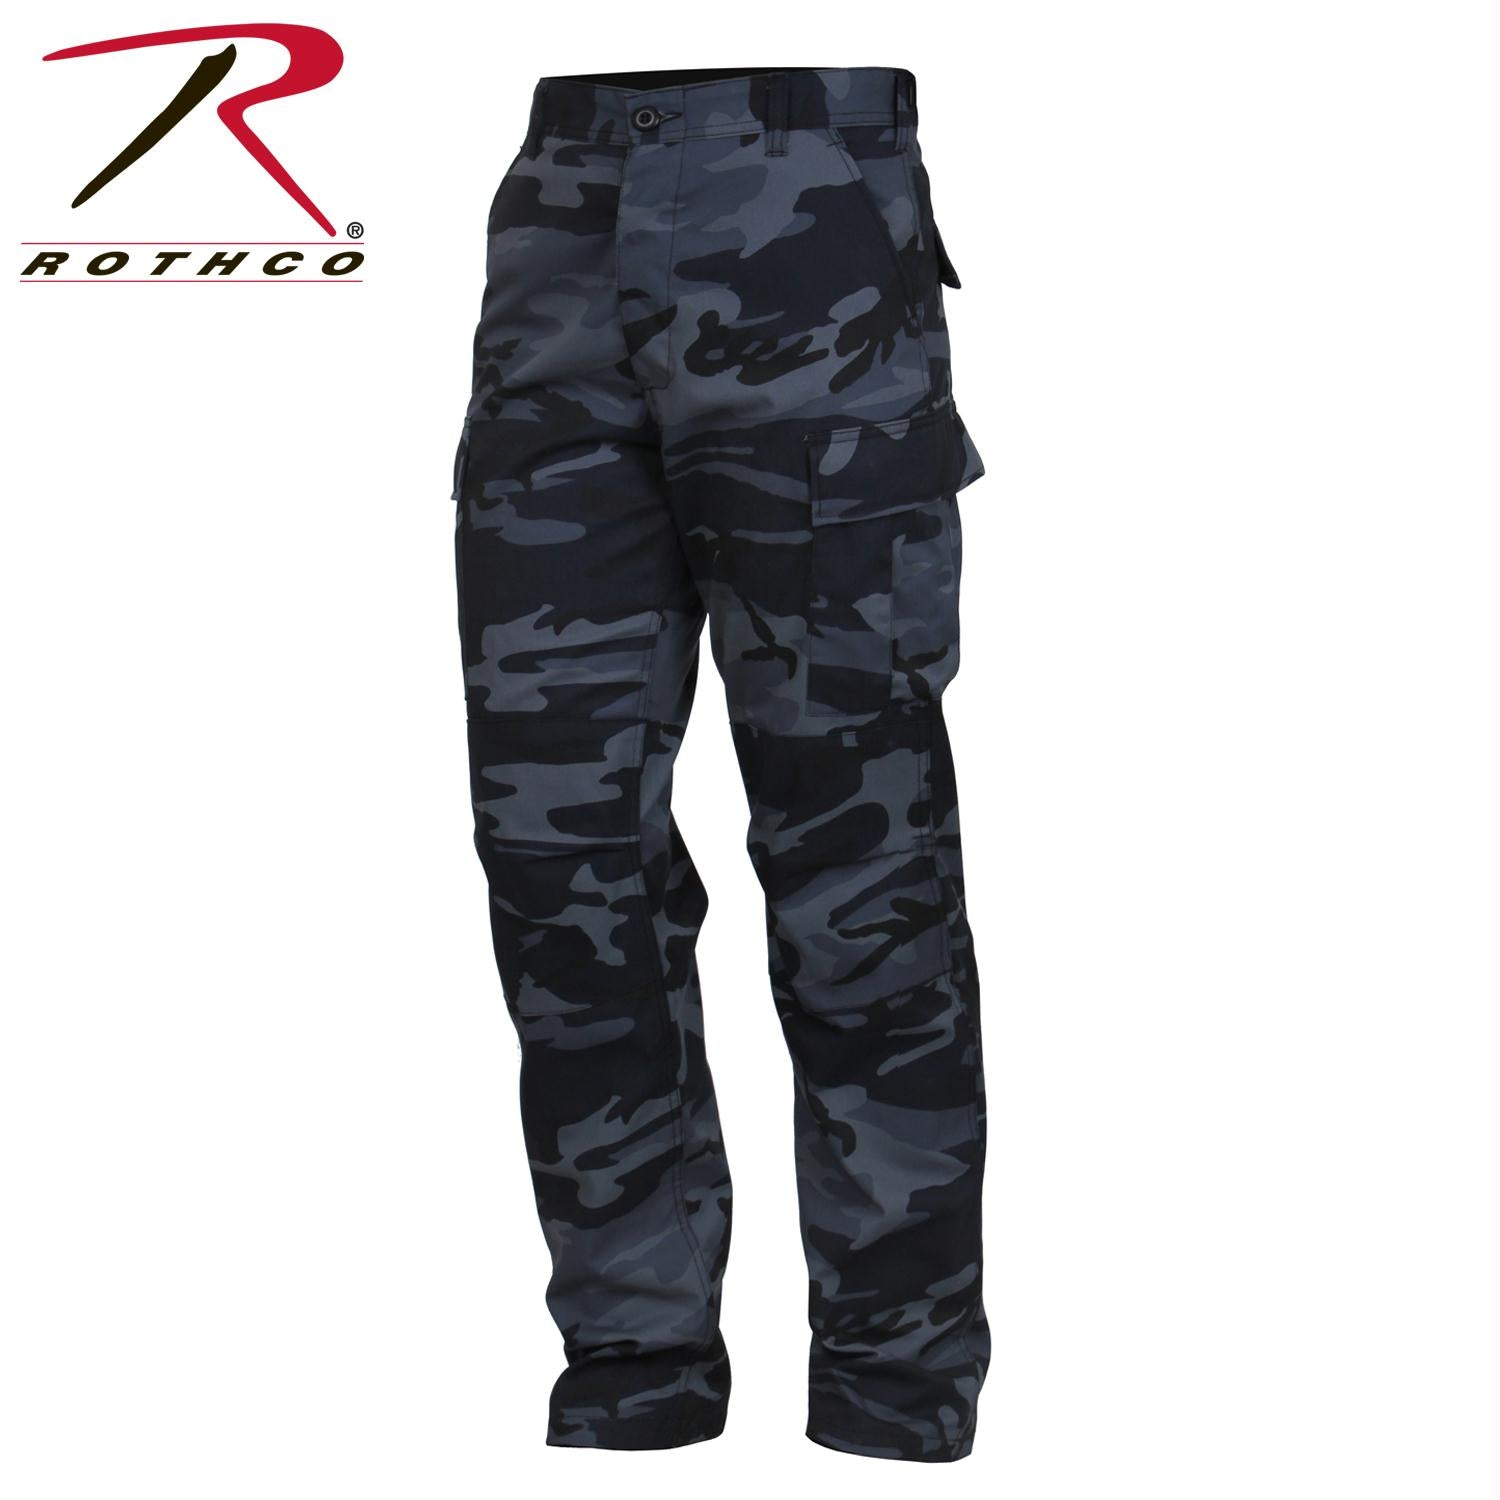 Rothco Color Camo Tactical BDU Pant - Midnight Blue Camo / 2XL